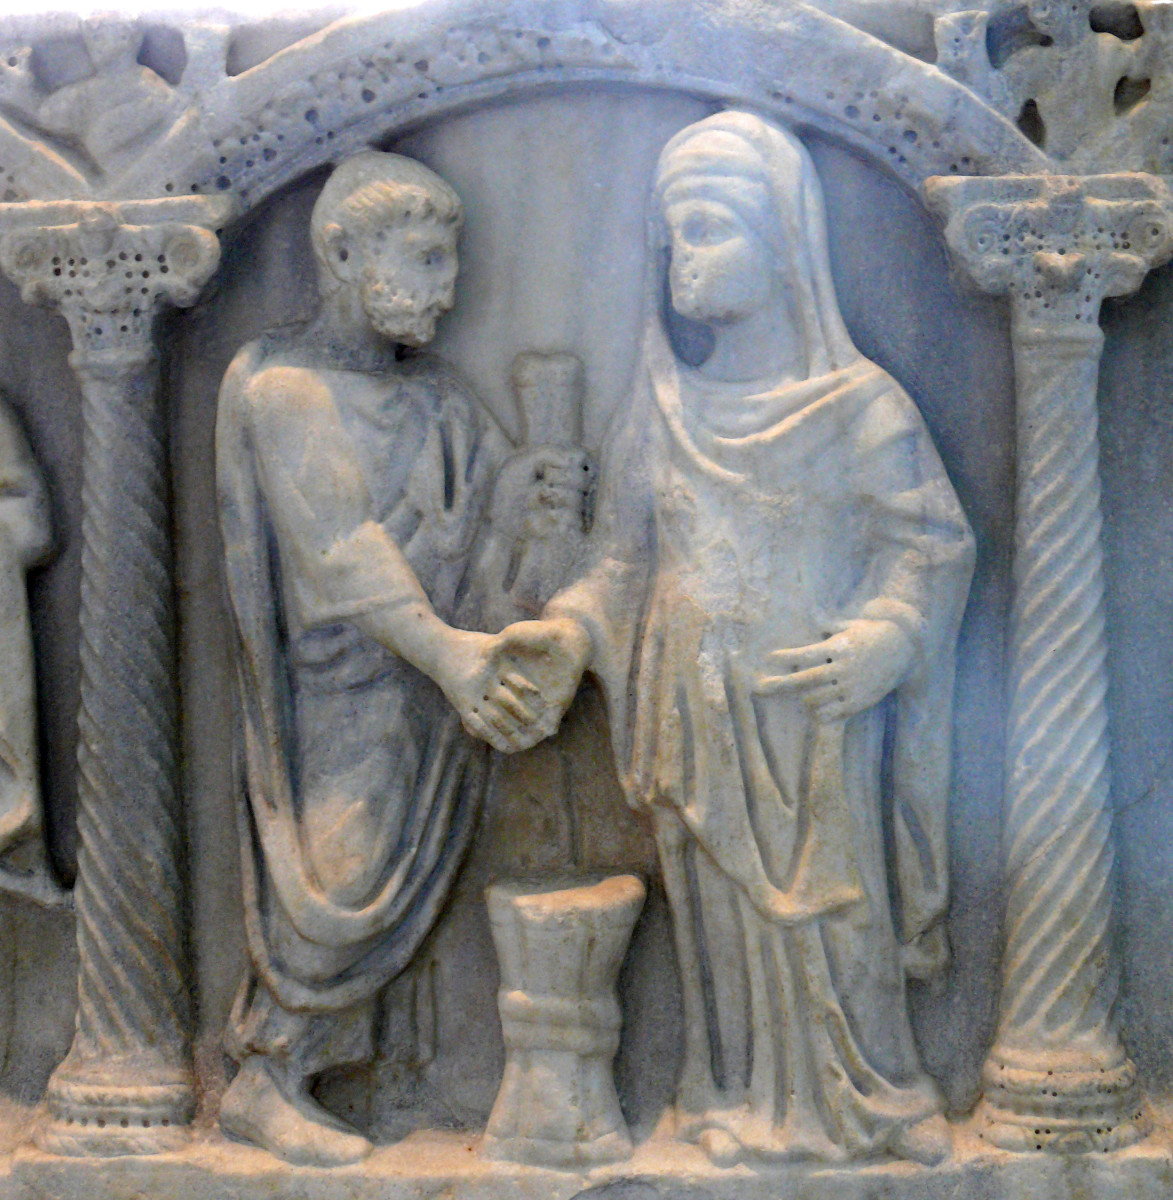 A Roman couple joining hands. The bride's belt tied in a knot symbolized the husband's unification with her.